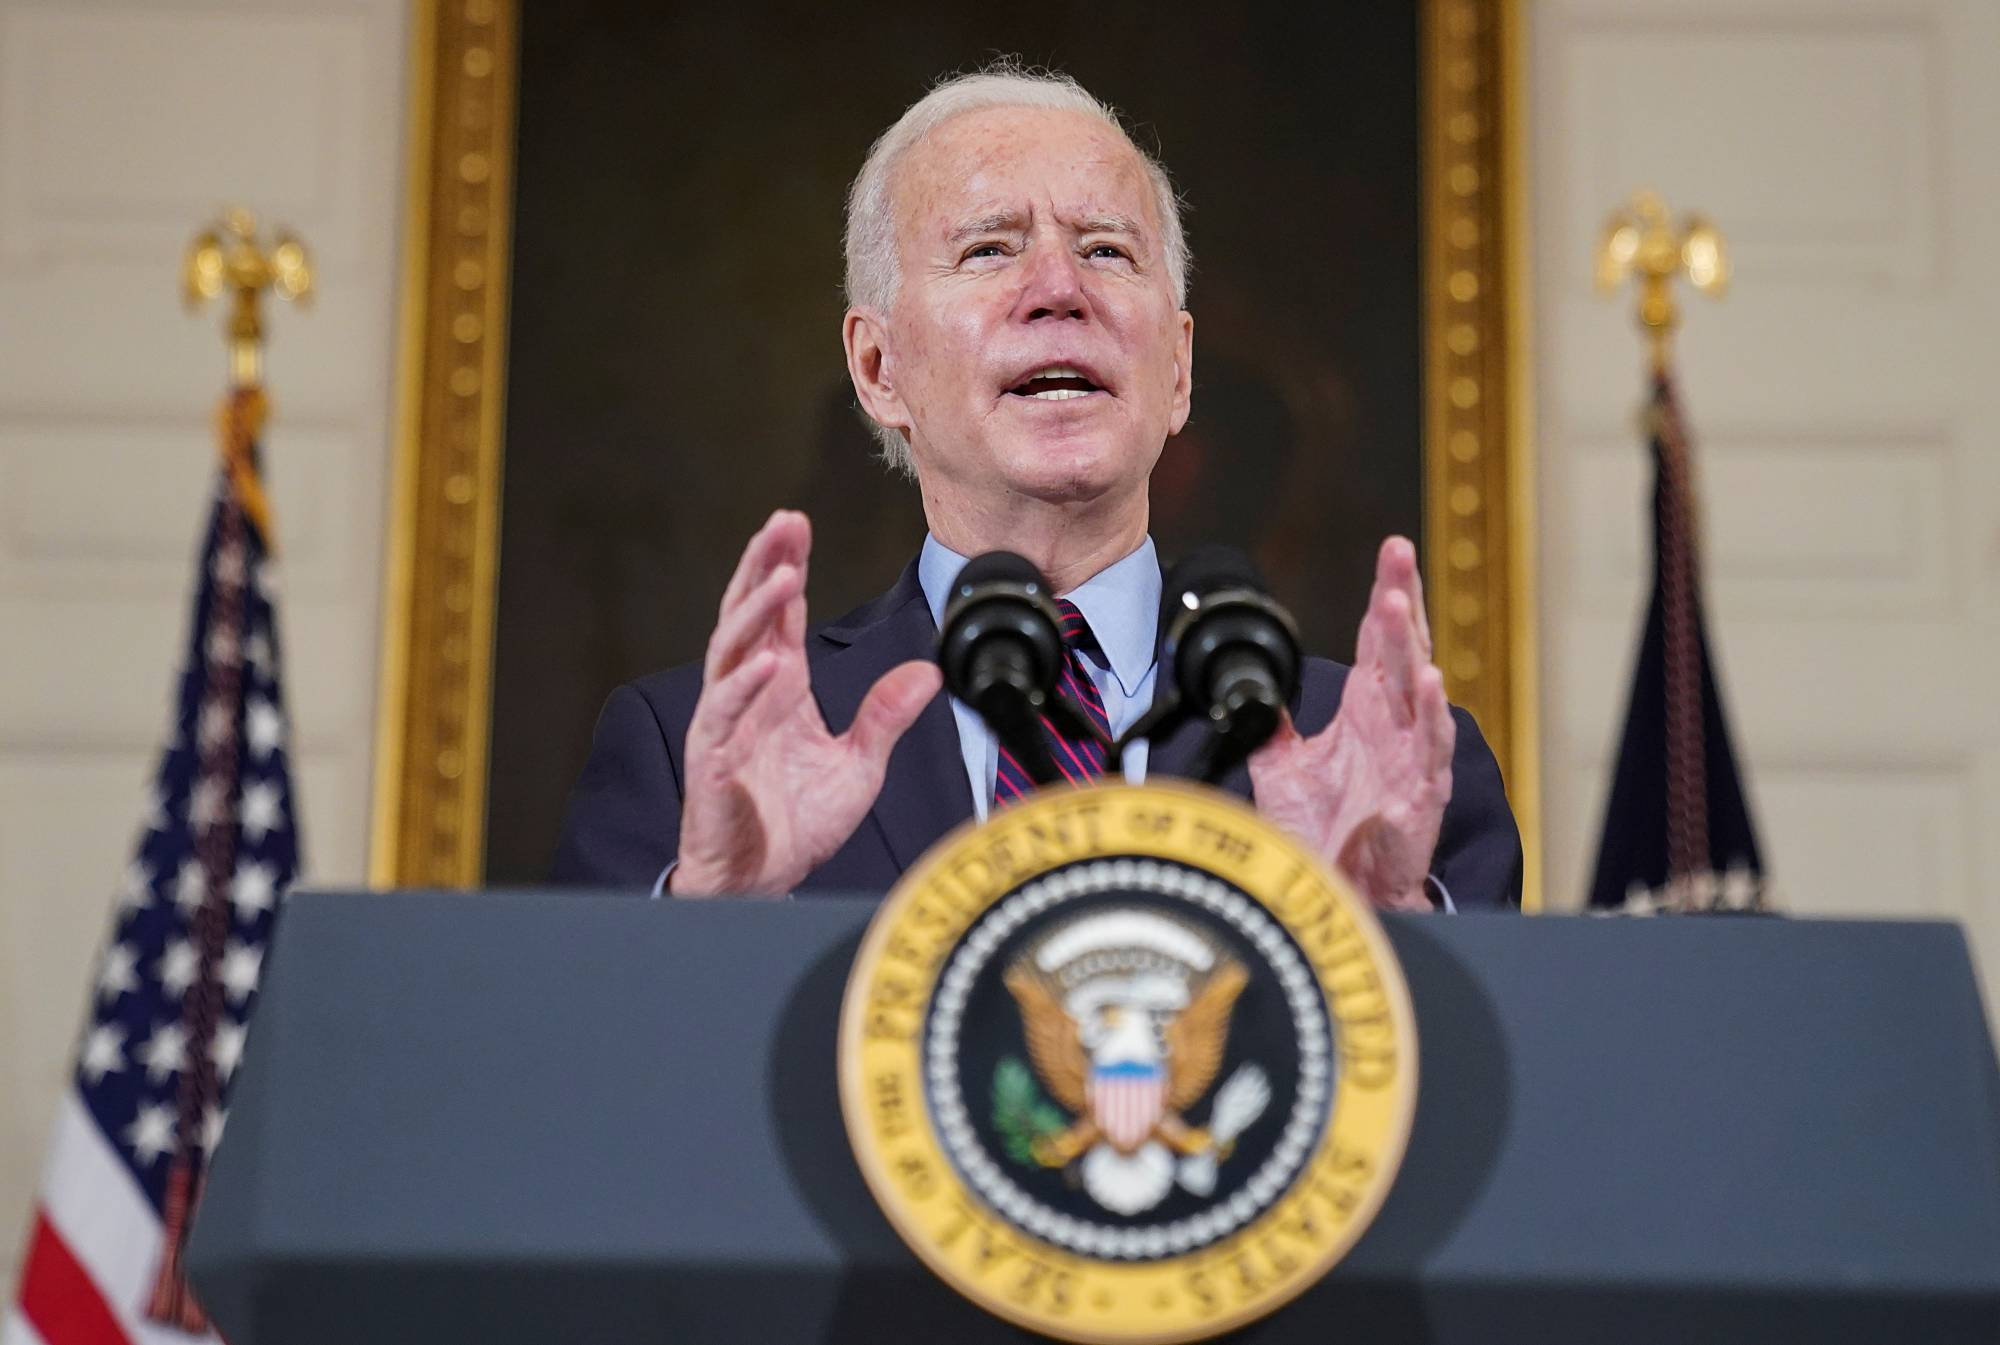 U.S. President Joe Biden speaks in Washington on Feb. 5. | REUTERS